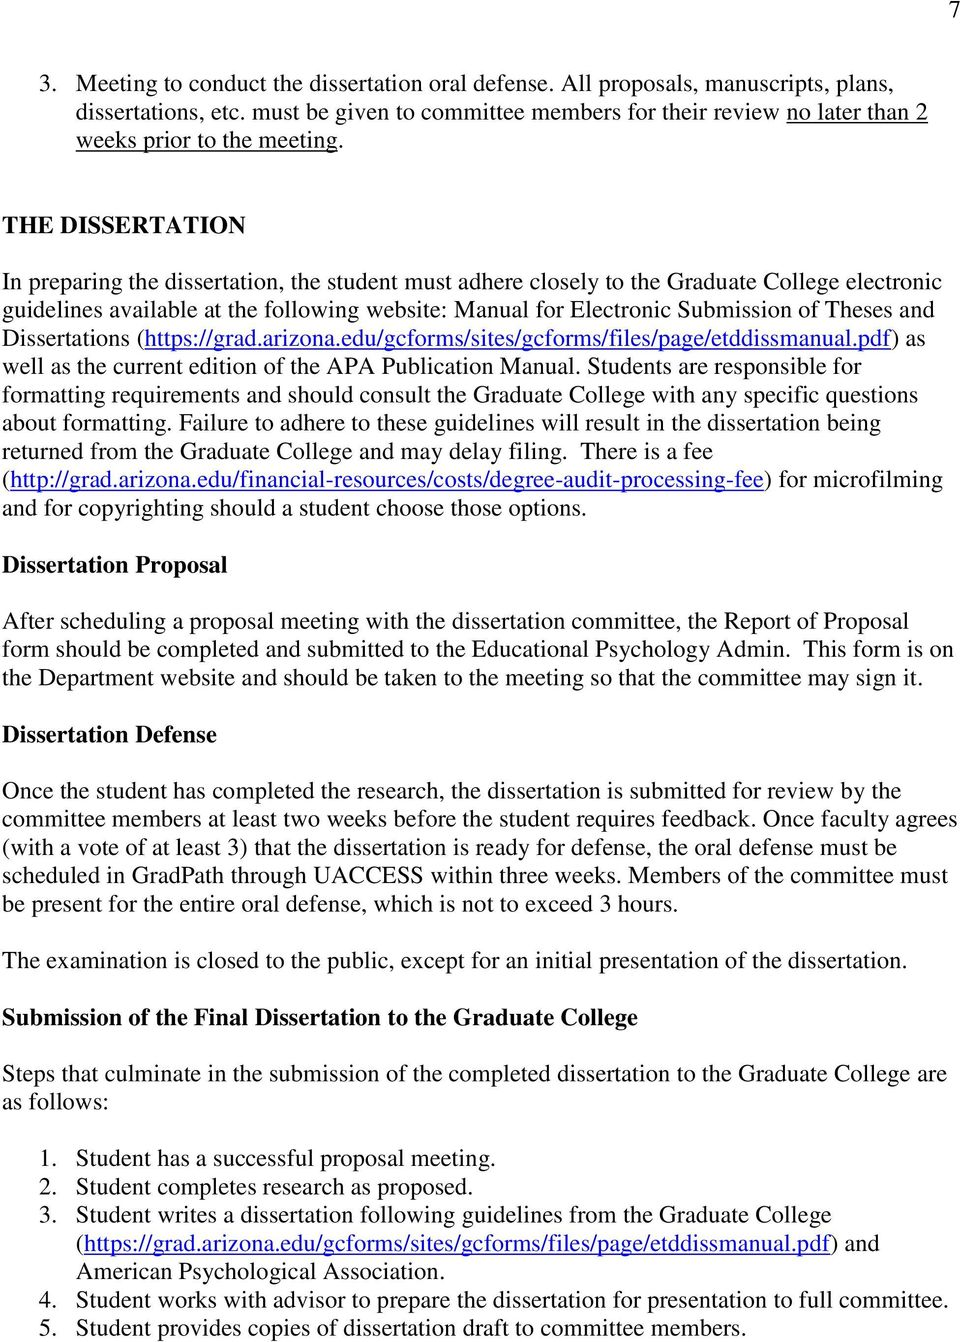 THE DISSERTATION In preparing the dissertation, the student must adhere closely to the Graduate College electronic guidelines available at the following website: Manual for Electronic Submission of